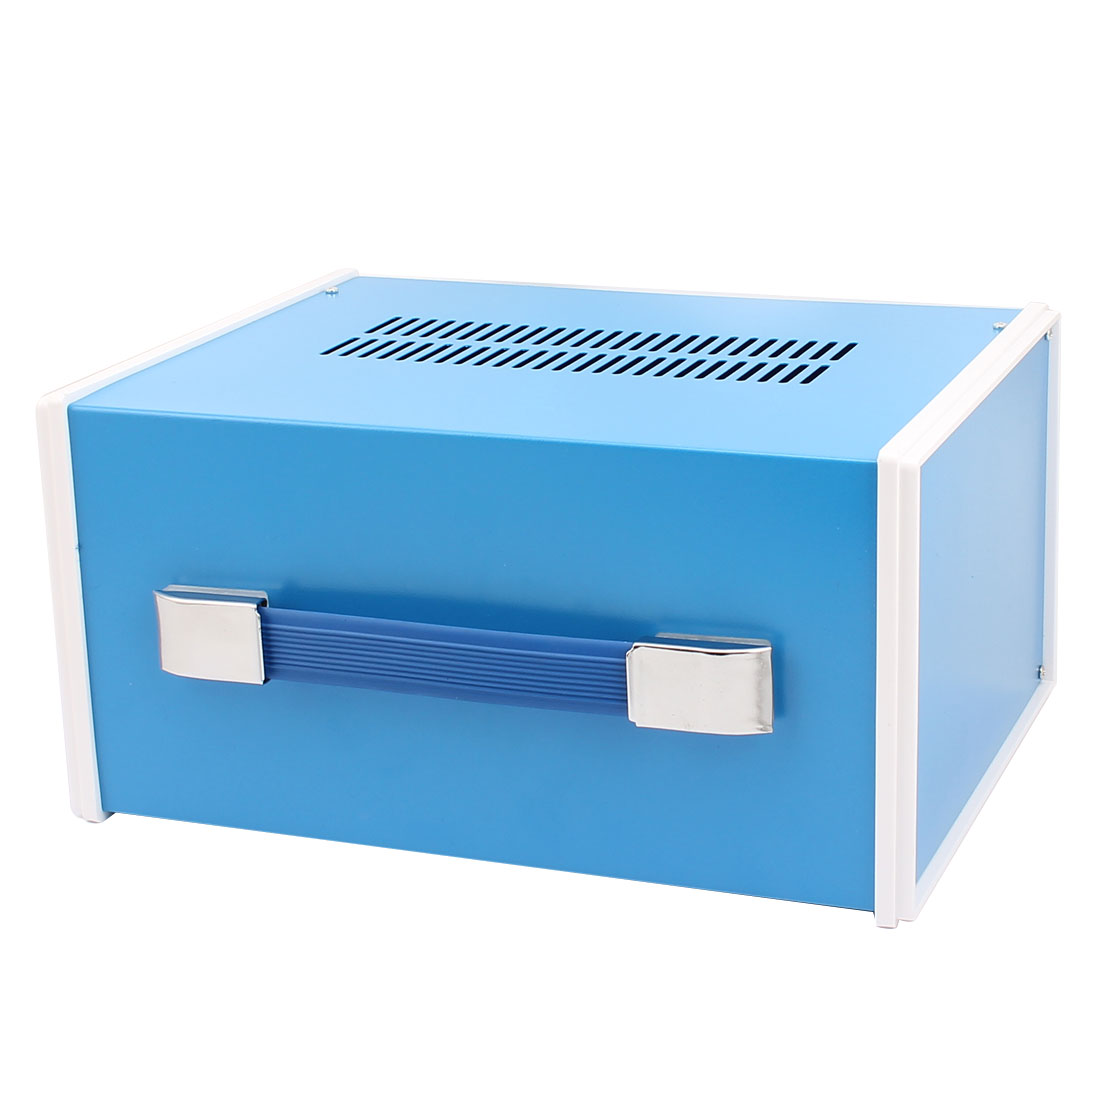 Metal Electronic Project Junction Box Enclosure Case Blue 270mm x 202mm x 130mm - image 1 de 3